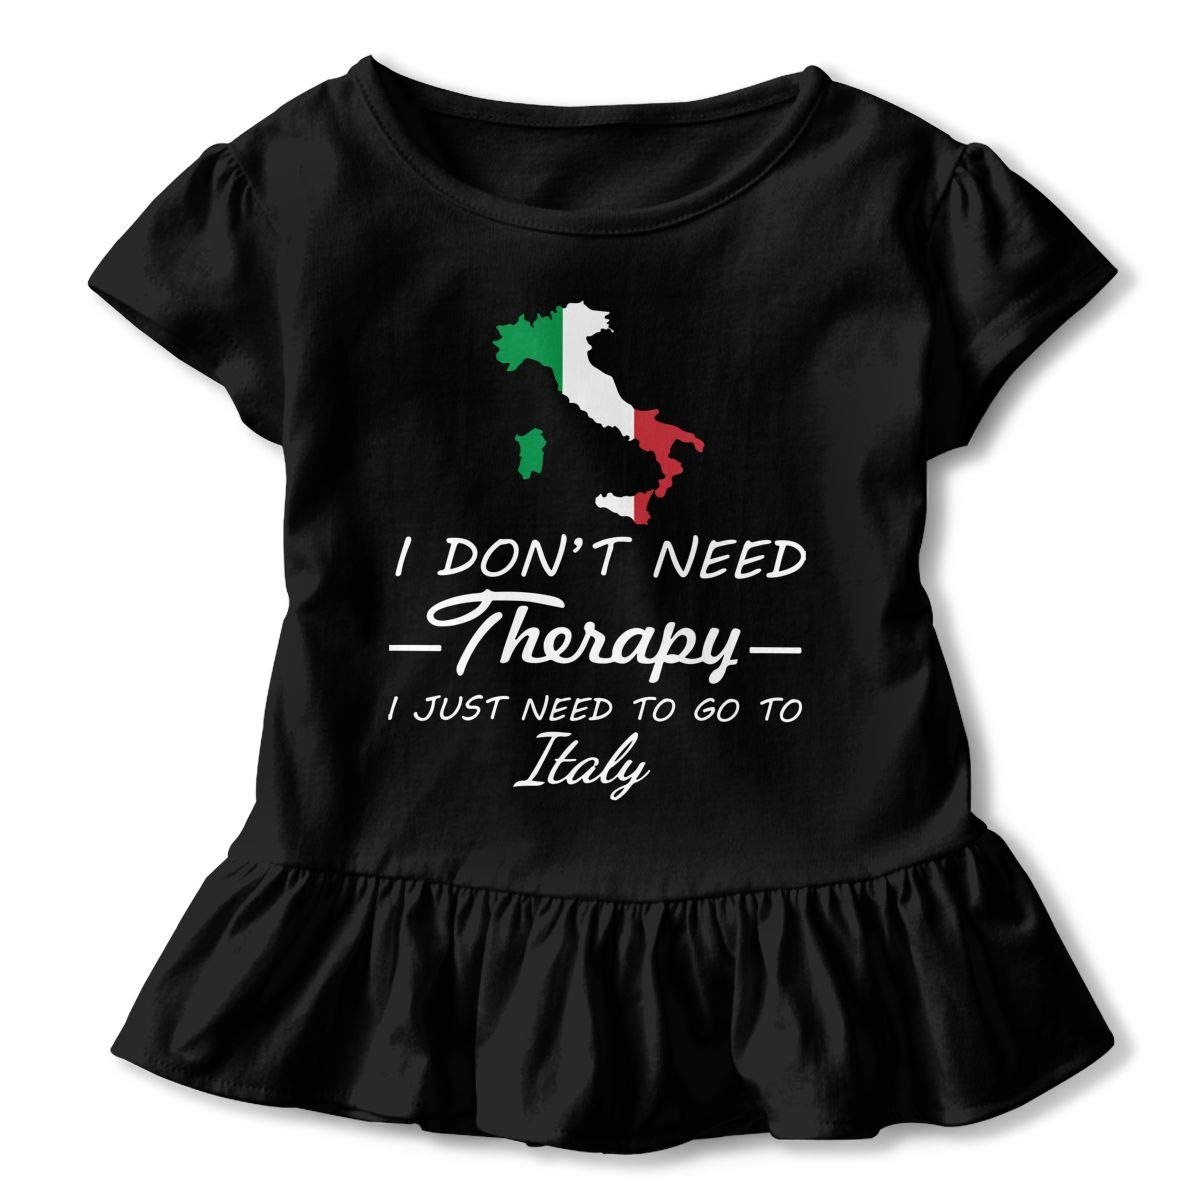 I Dont Need Therapy I Just Need to Go to Italy Childrens Girls Short Sleeve T Shirts Ruffles Shirt Tee Jersey for 2-6T